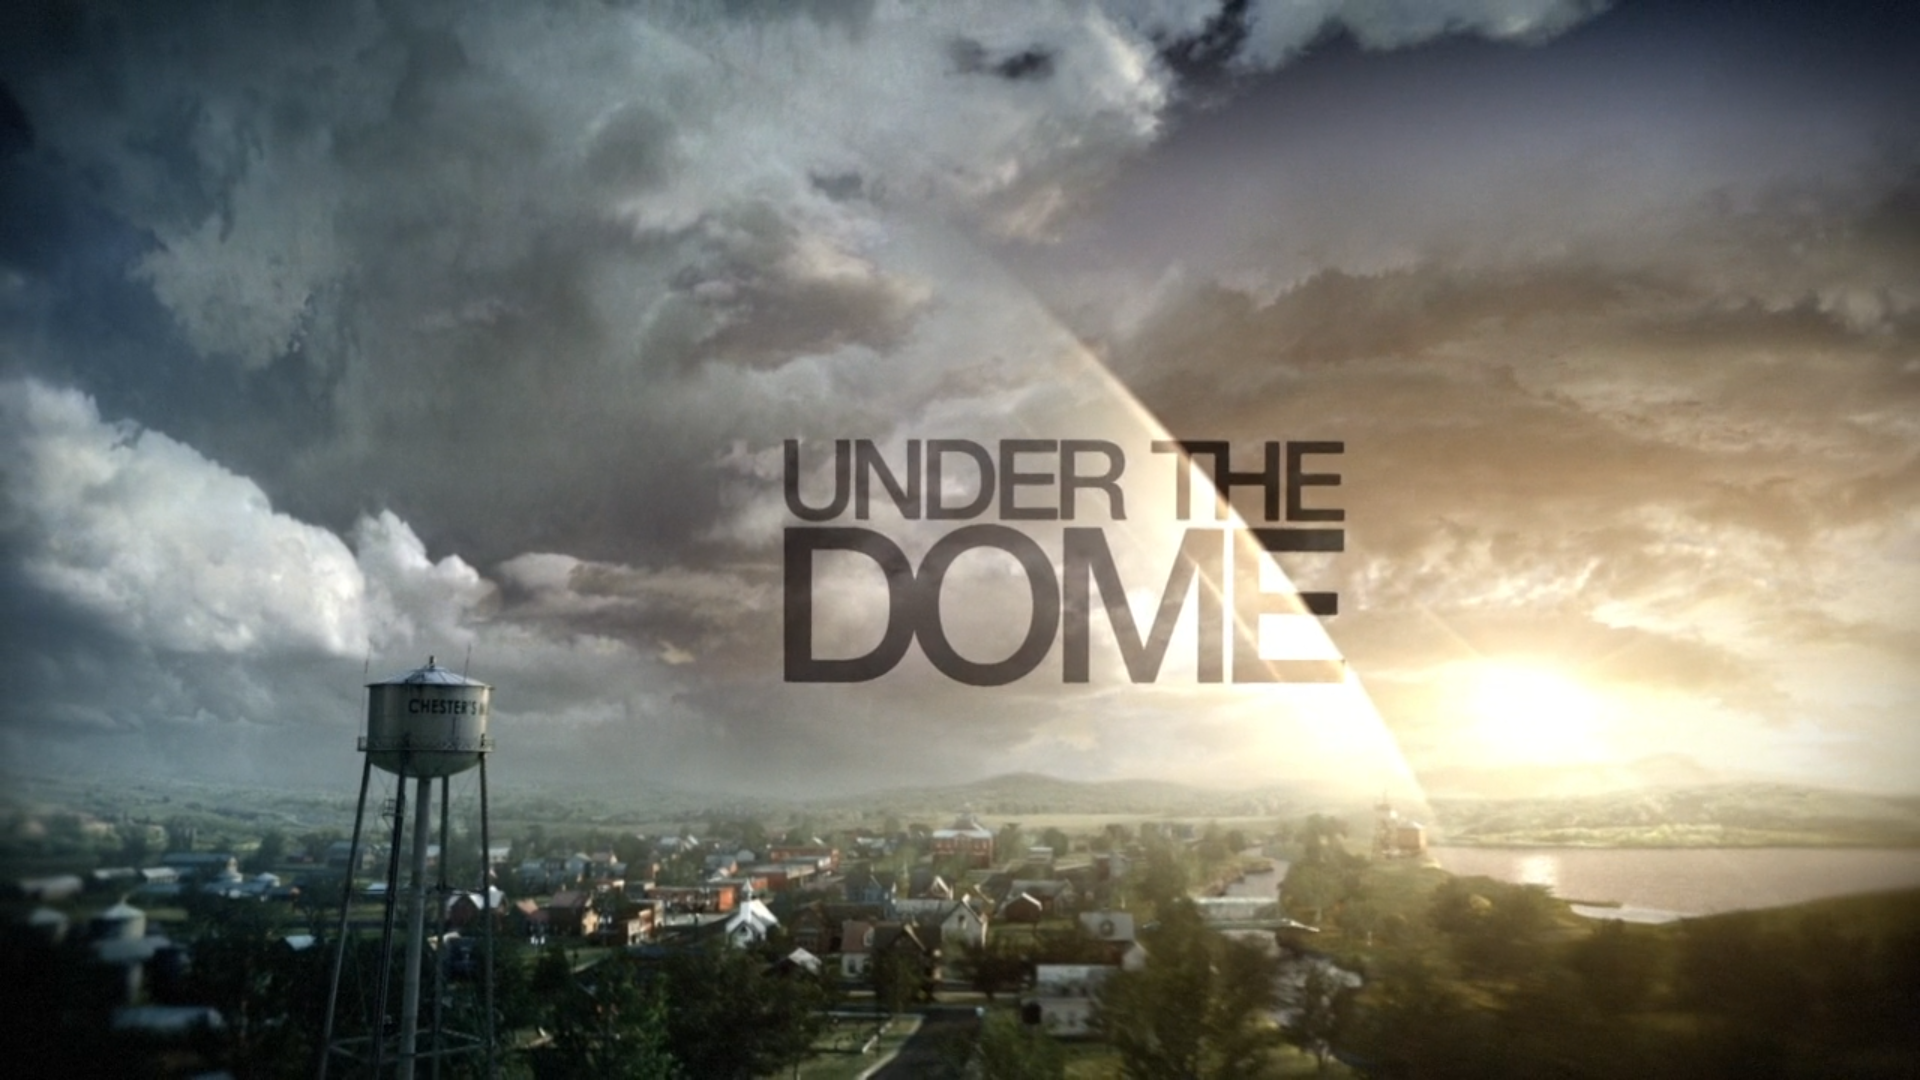 Under the dome documentary may raise public pressure on China to bring green reforms